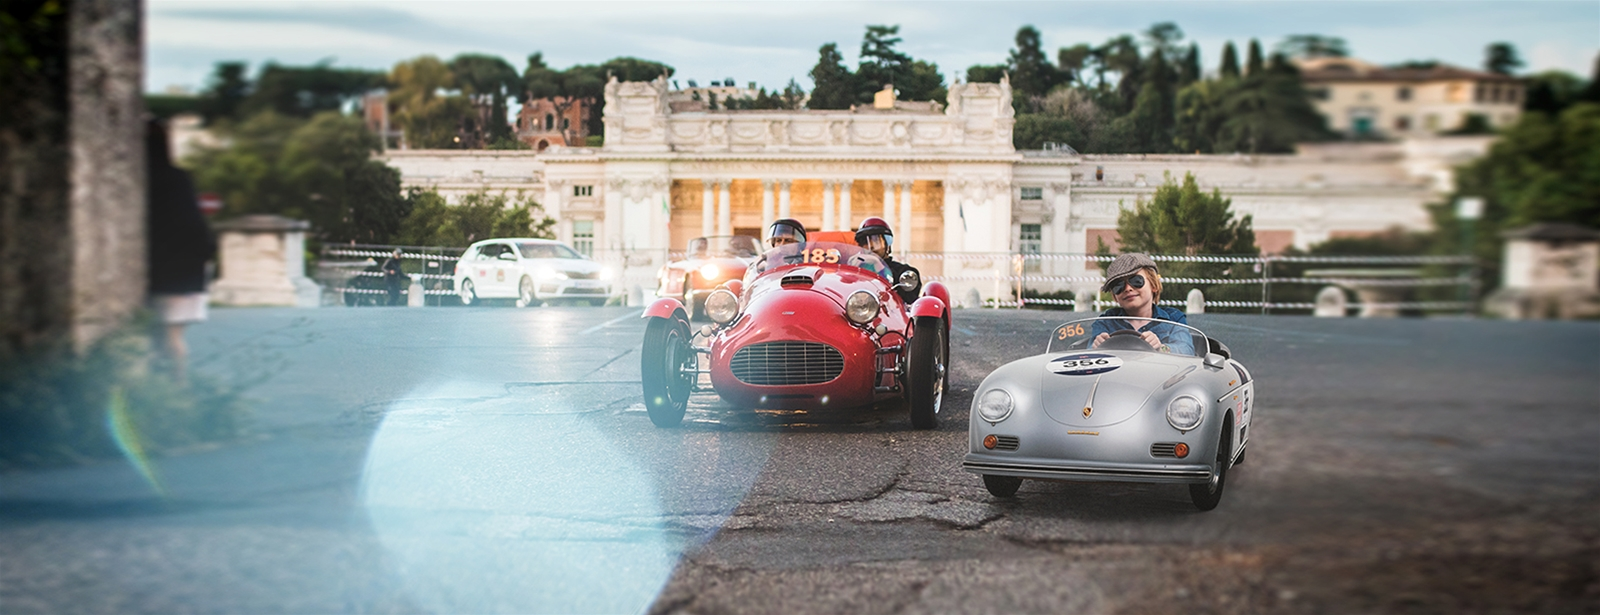 1000 Miglia 2019.  - Sooner or later we will realise your classic dream.